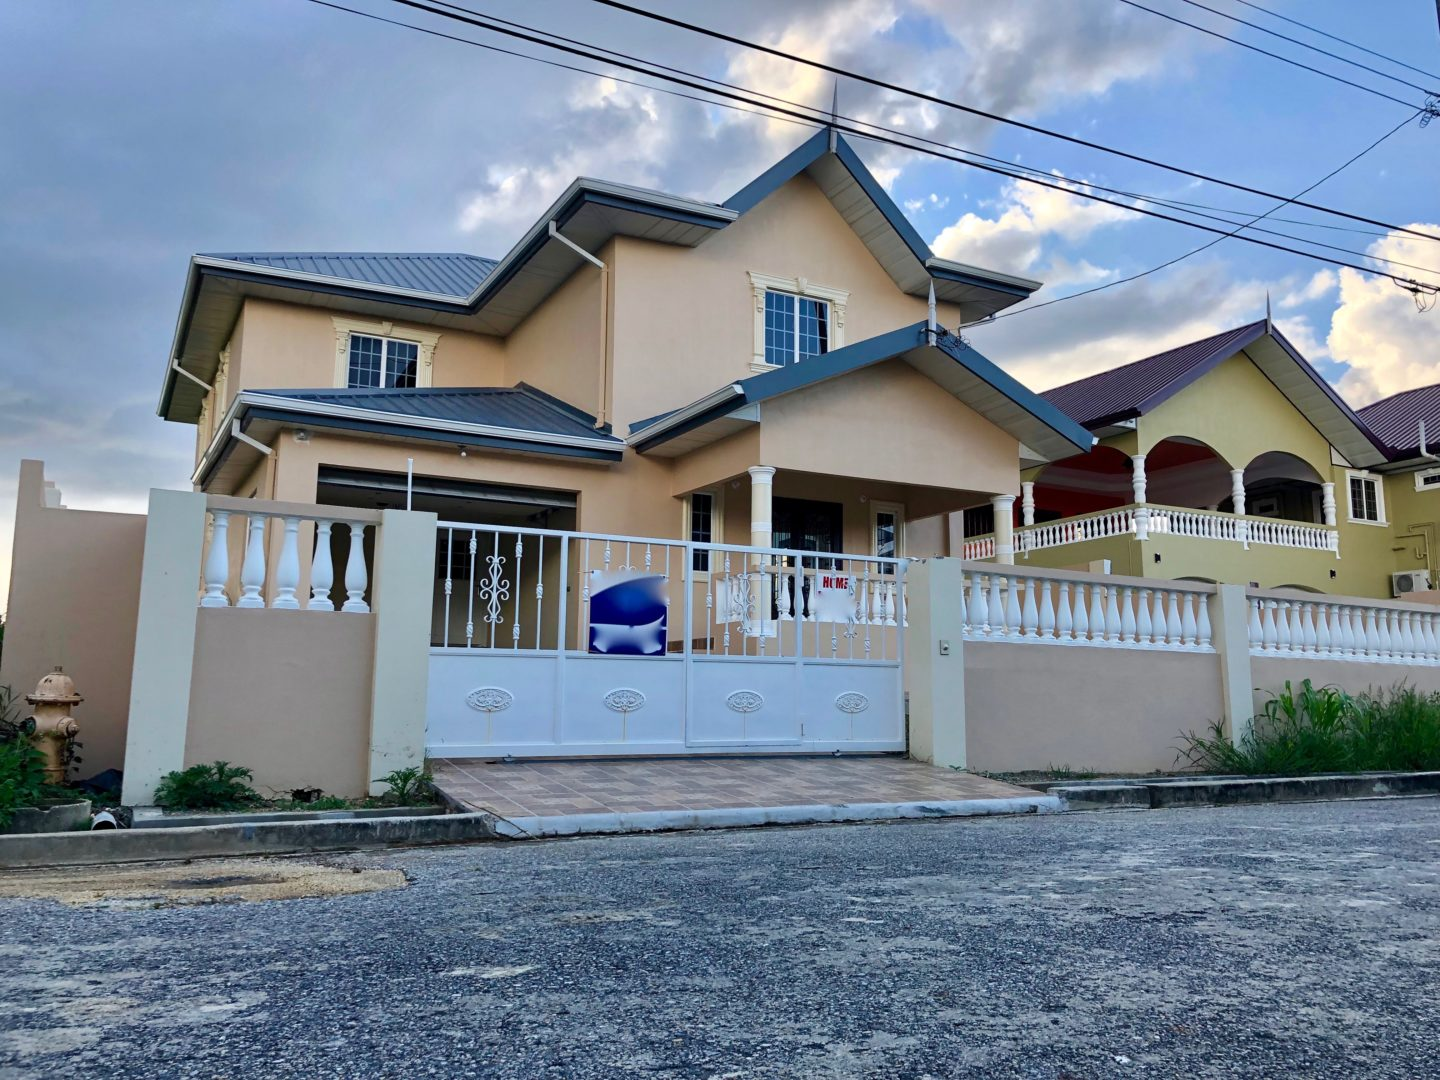 Timberland Park – Newly constructed home